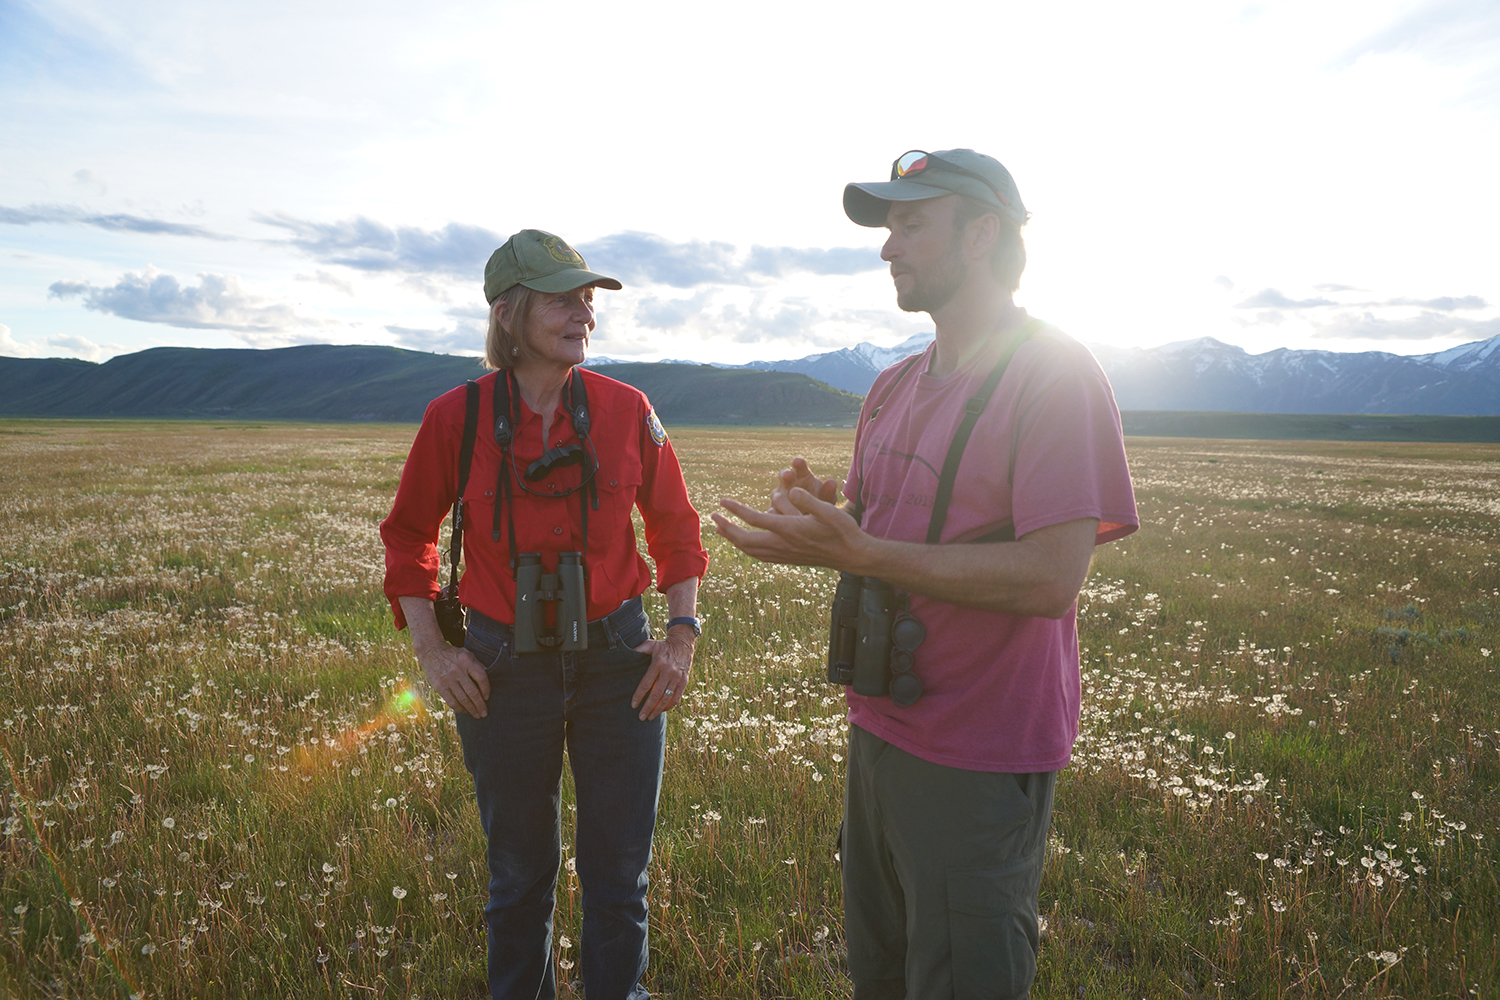 Far Afield: A Conservation Love Story - Susan Patla, Nongame Biologist with Wyoming Game and Fish, and Jay Carlisle, Research Director of the Intermountain Bird Observatory at Boise State, on the National Elk Refuge to put transmitters on curlews. The study is partially funded by the Raynes Wildlife Fund. Photo credit: JenTen Productions.